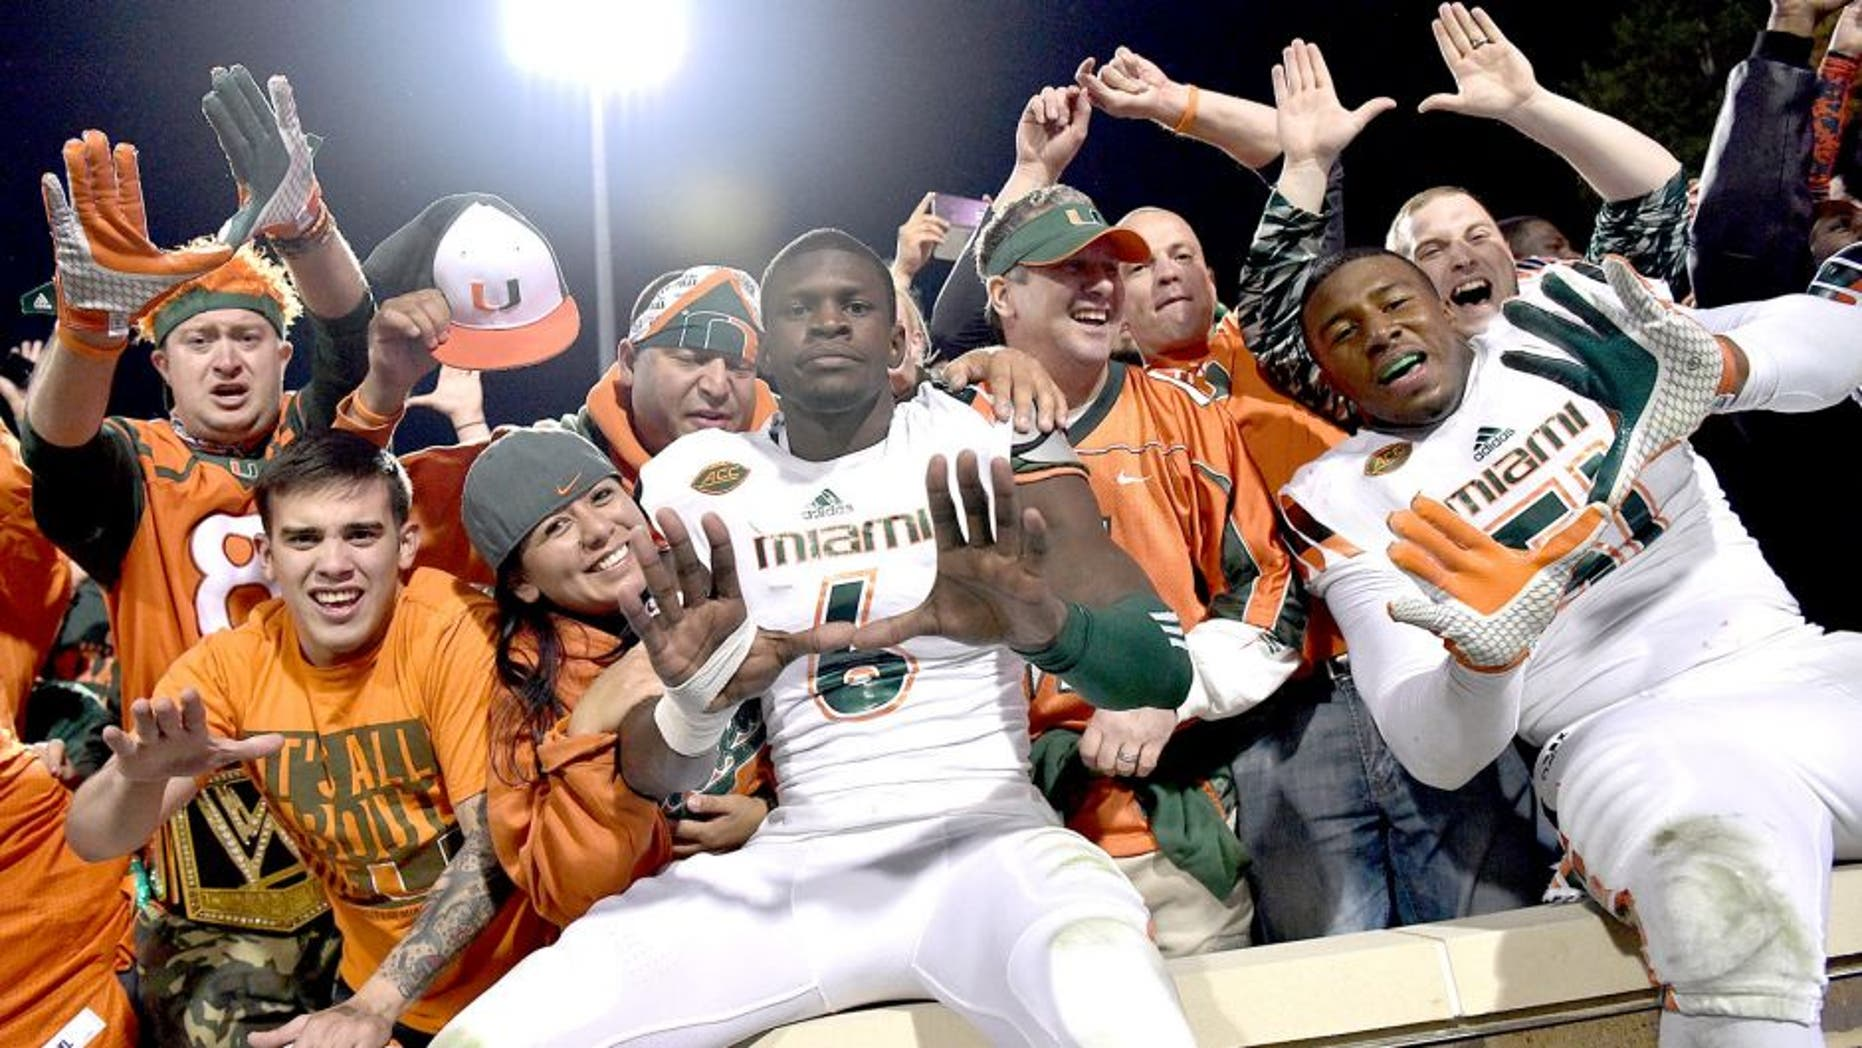 DURHAM, NC - OCTOBER 31: Miami Hurricanes players and fans celebrate after a win against the Duke Blue Devils at Wallace Wade Stadium on October 31, 2015 in Durham, North Carolina. Miami won 30-27 on a last-second touchdown. (Photo by Grant Halverson/Getty Images)